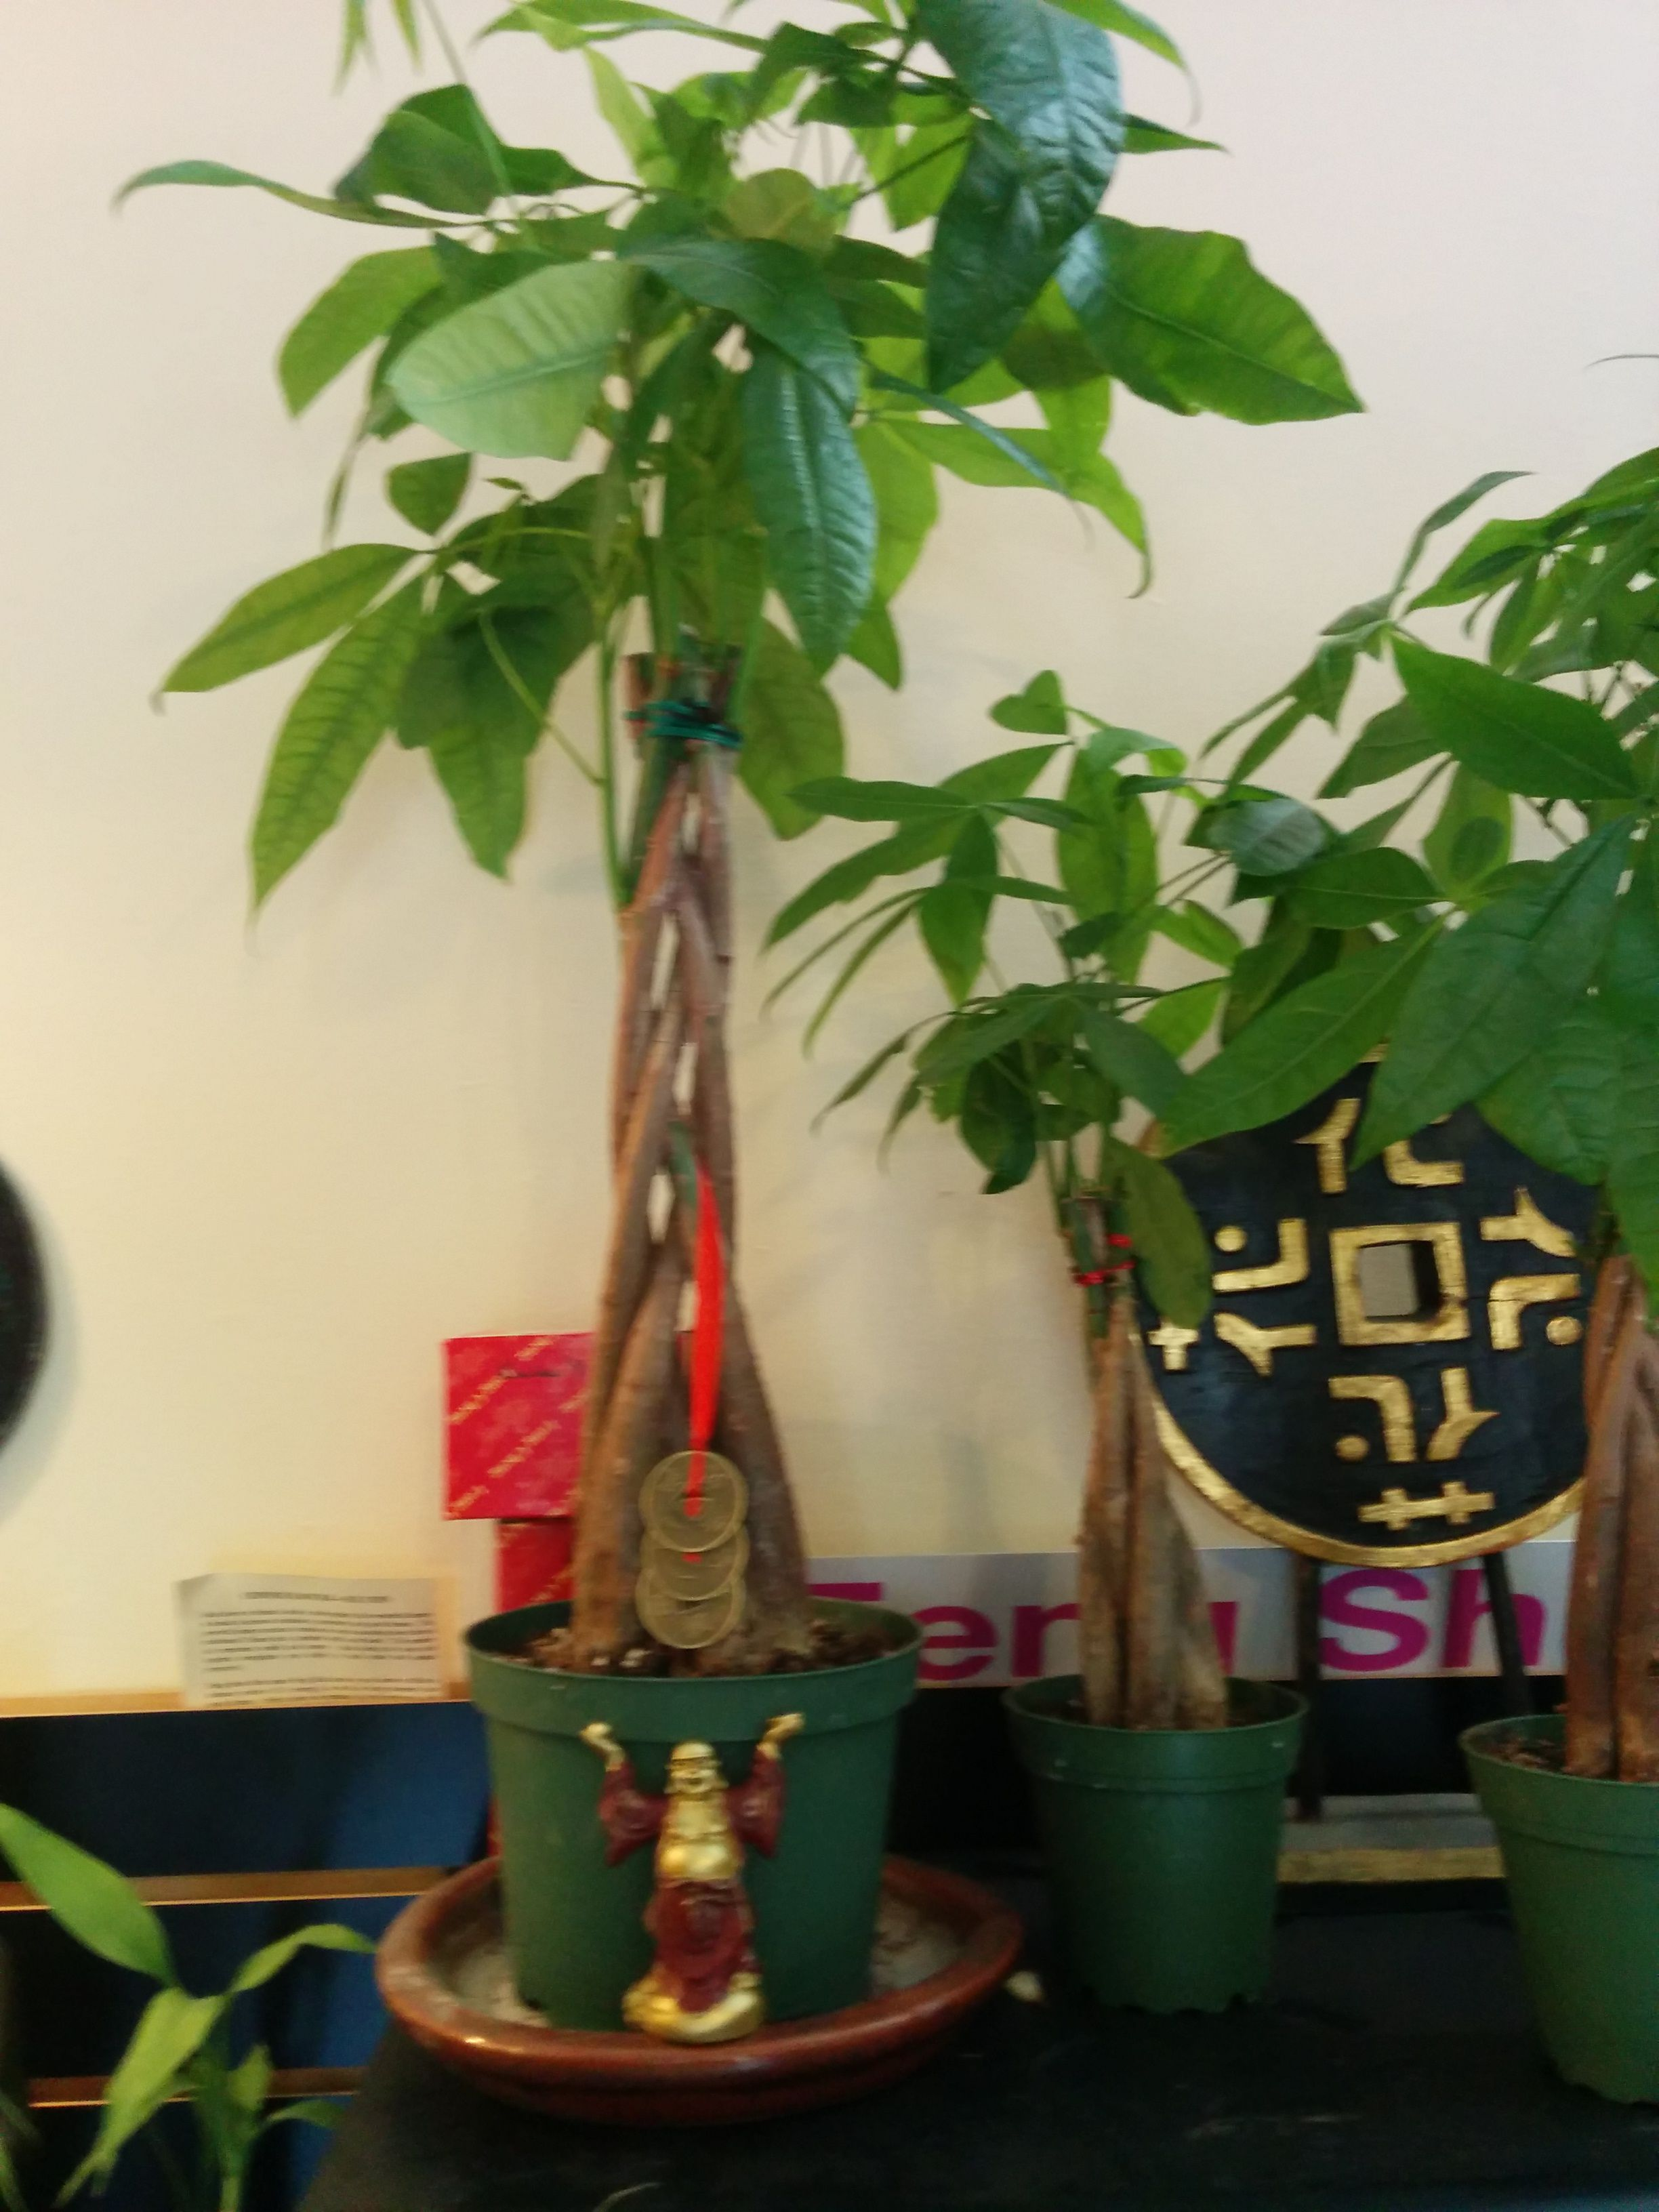 #Fengshui Cure For Wealth Place A Money Tree, Coins, And